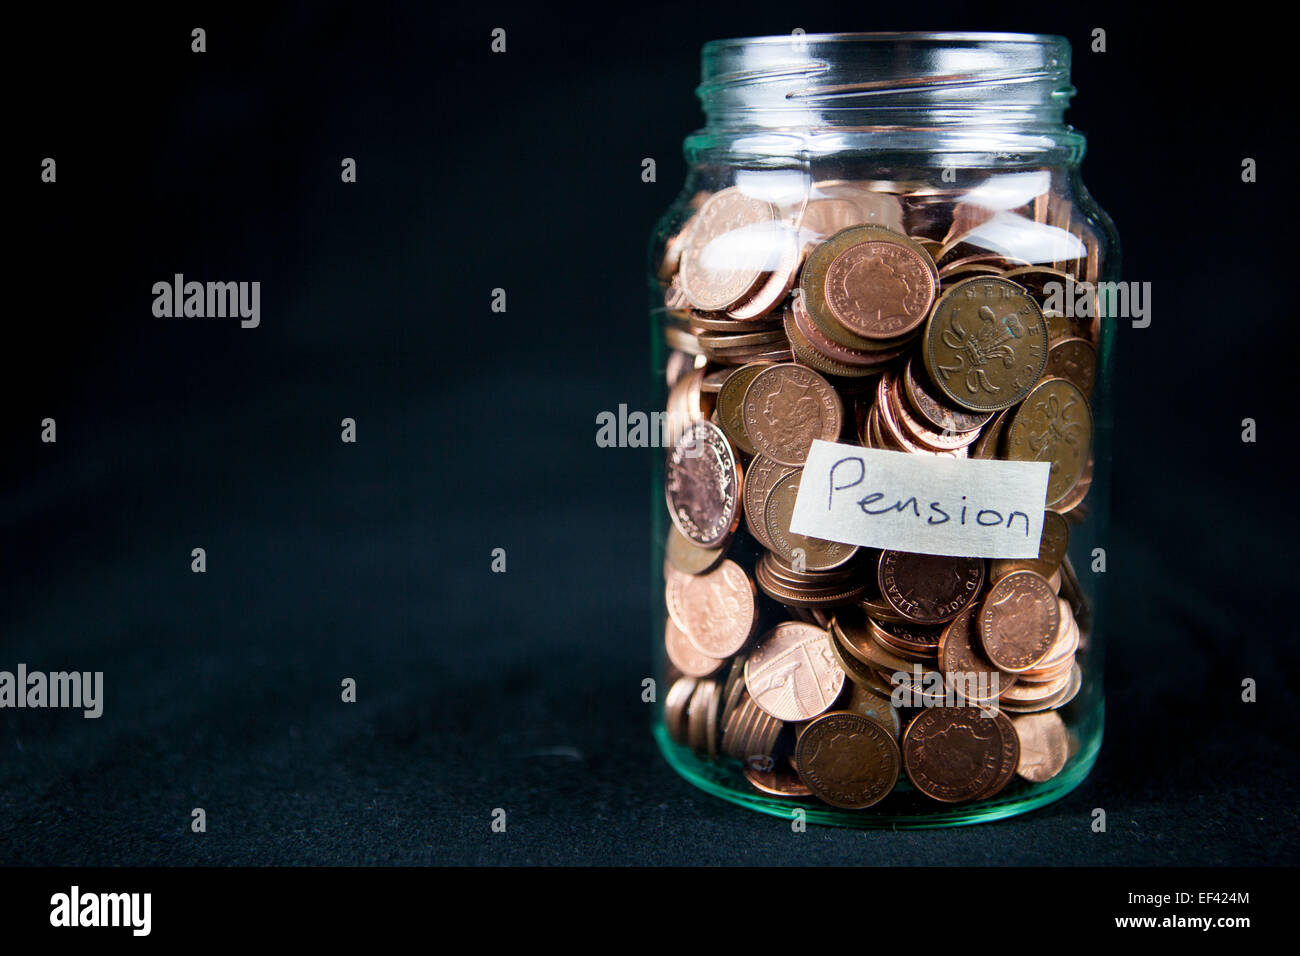 A glass jar holding 1 and 2 pence coins with a label saying 'Pension'. Text space left. - Stock Image